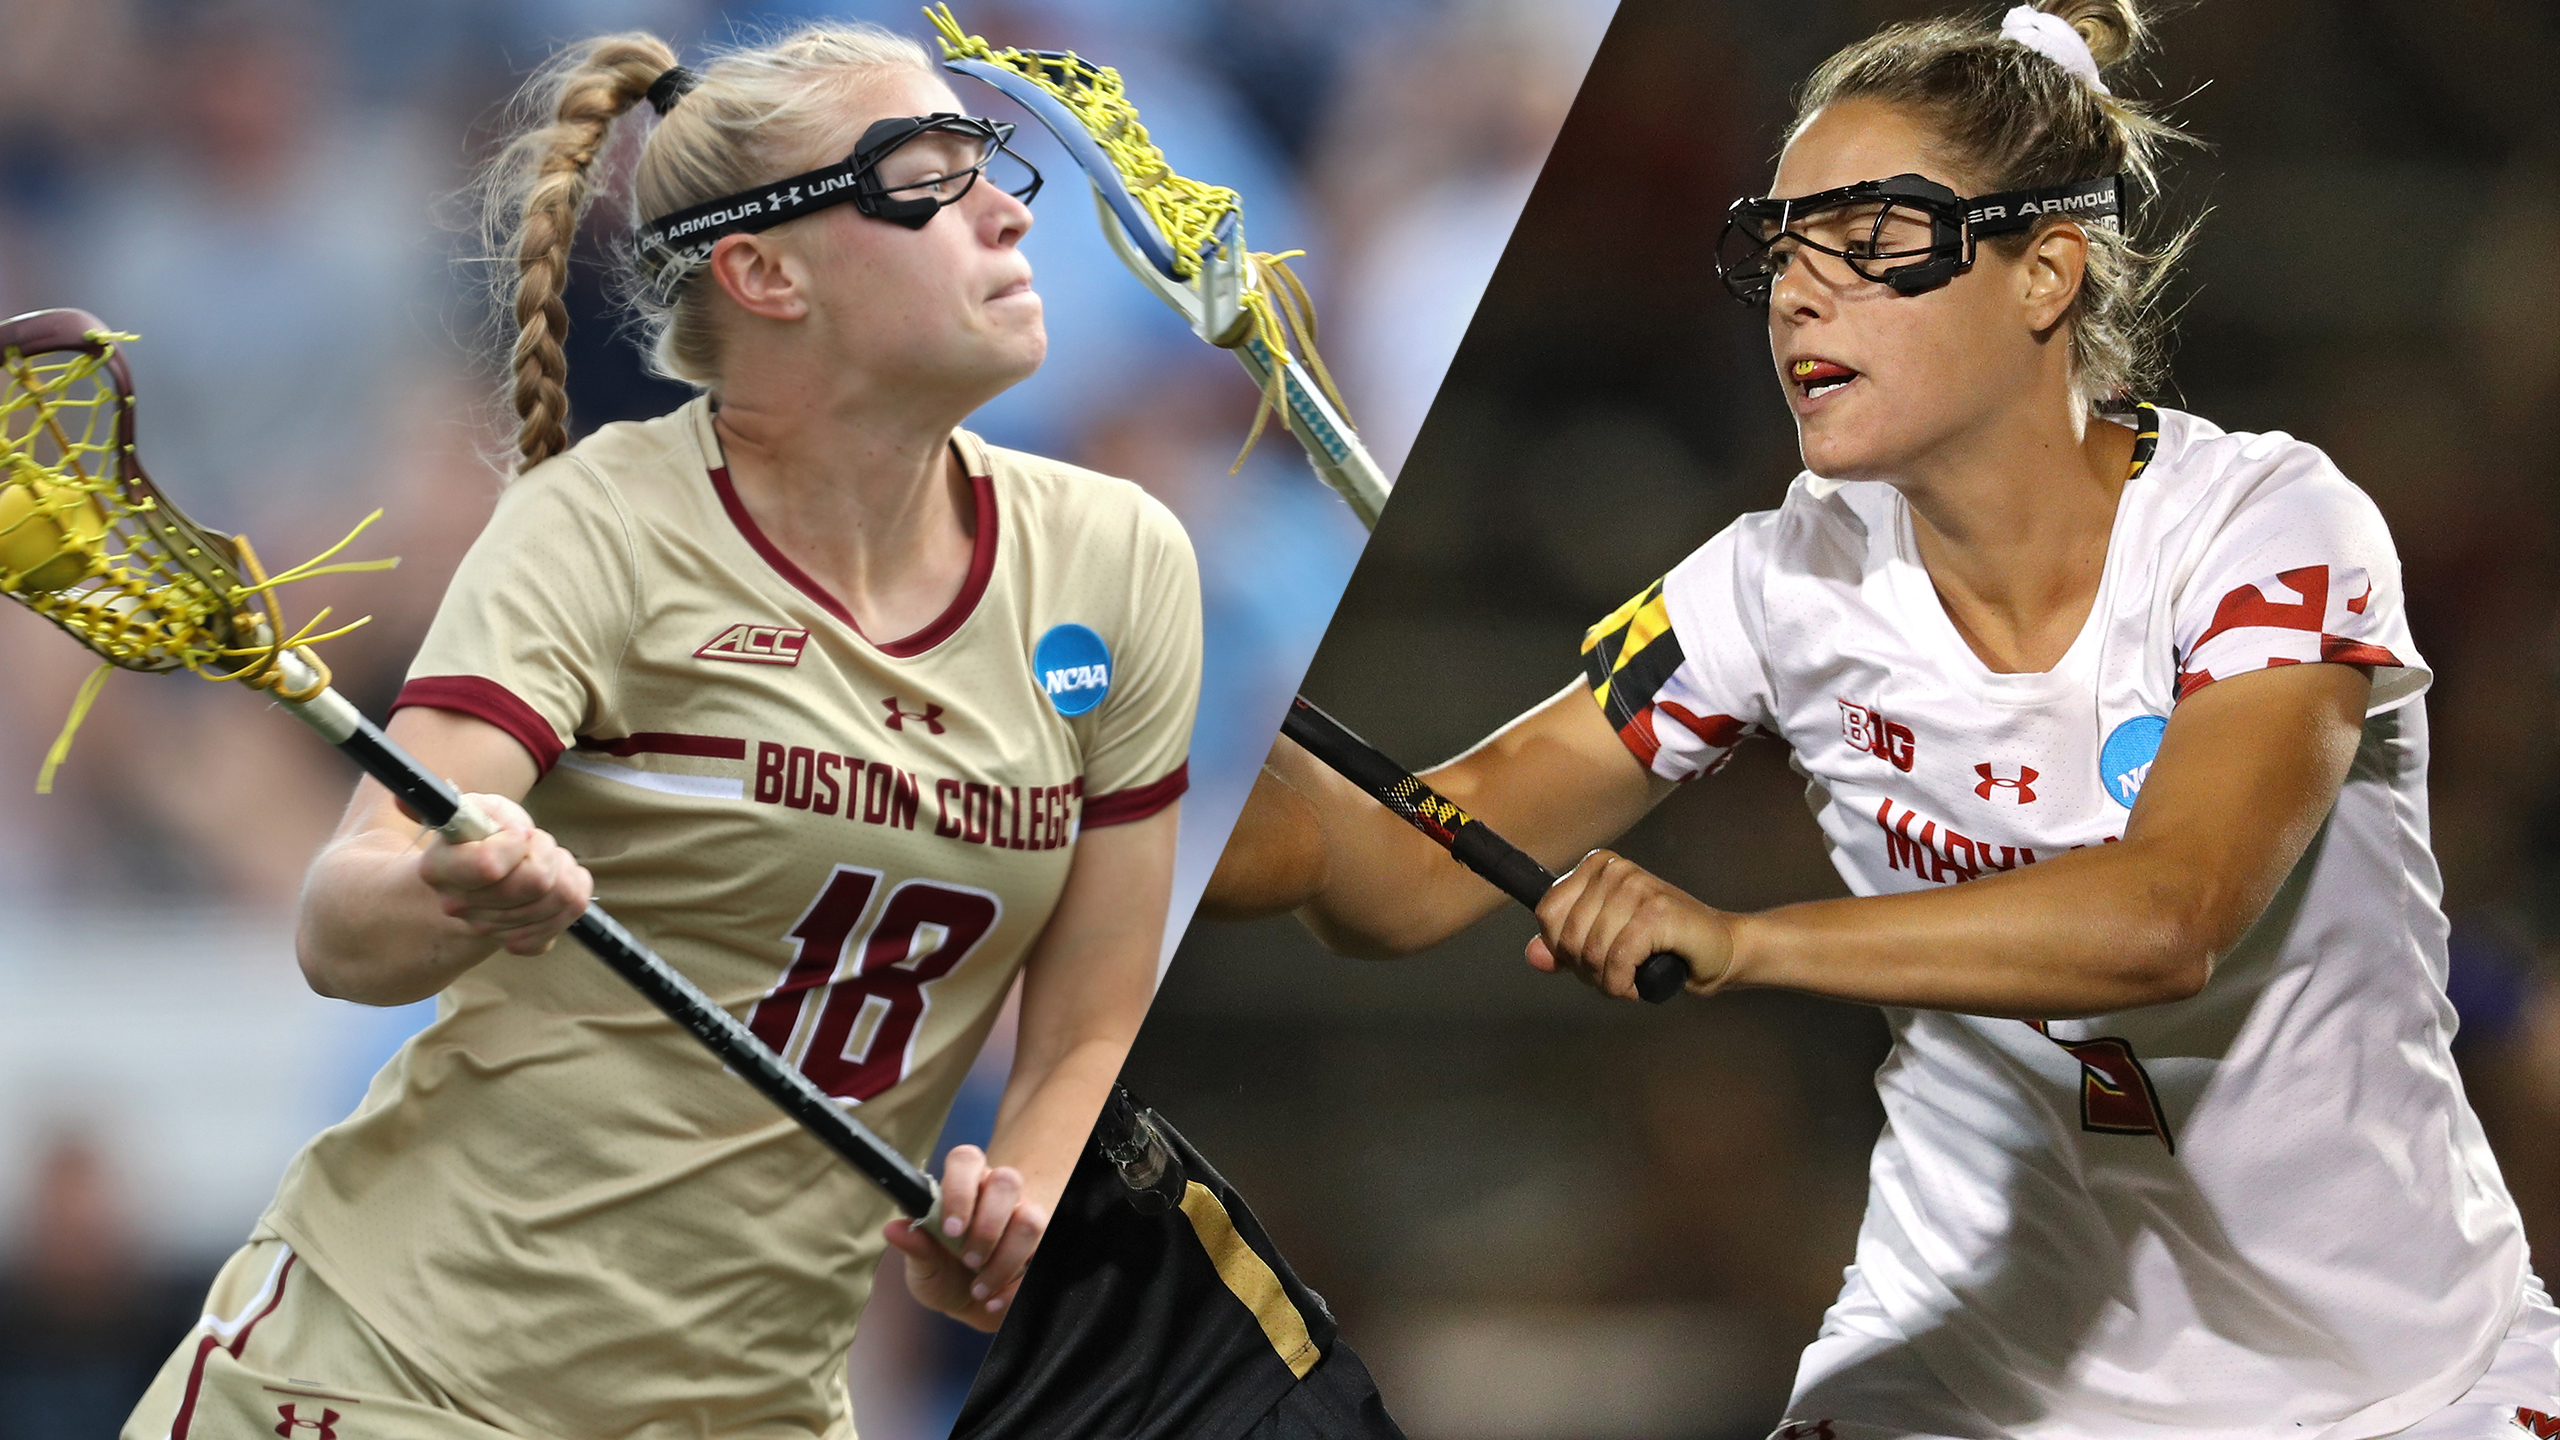 #2 Boston College vs. #1 Maryland (Championship)